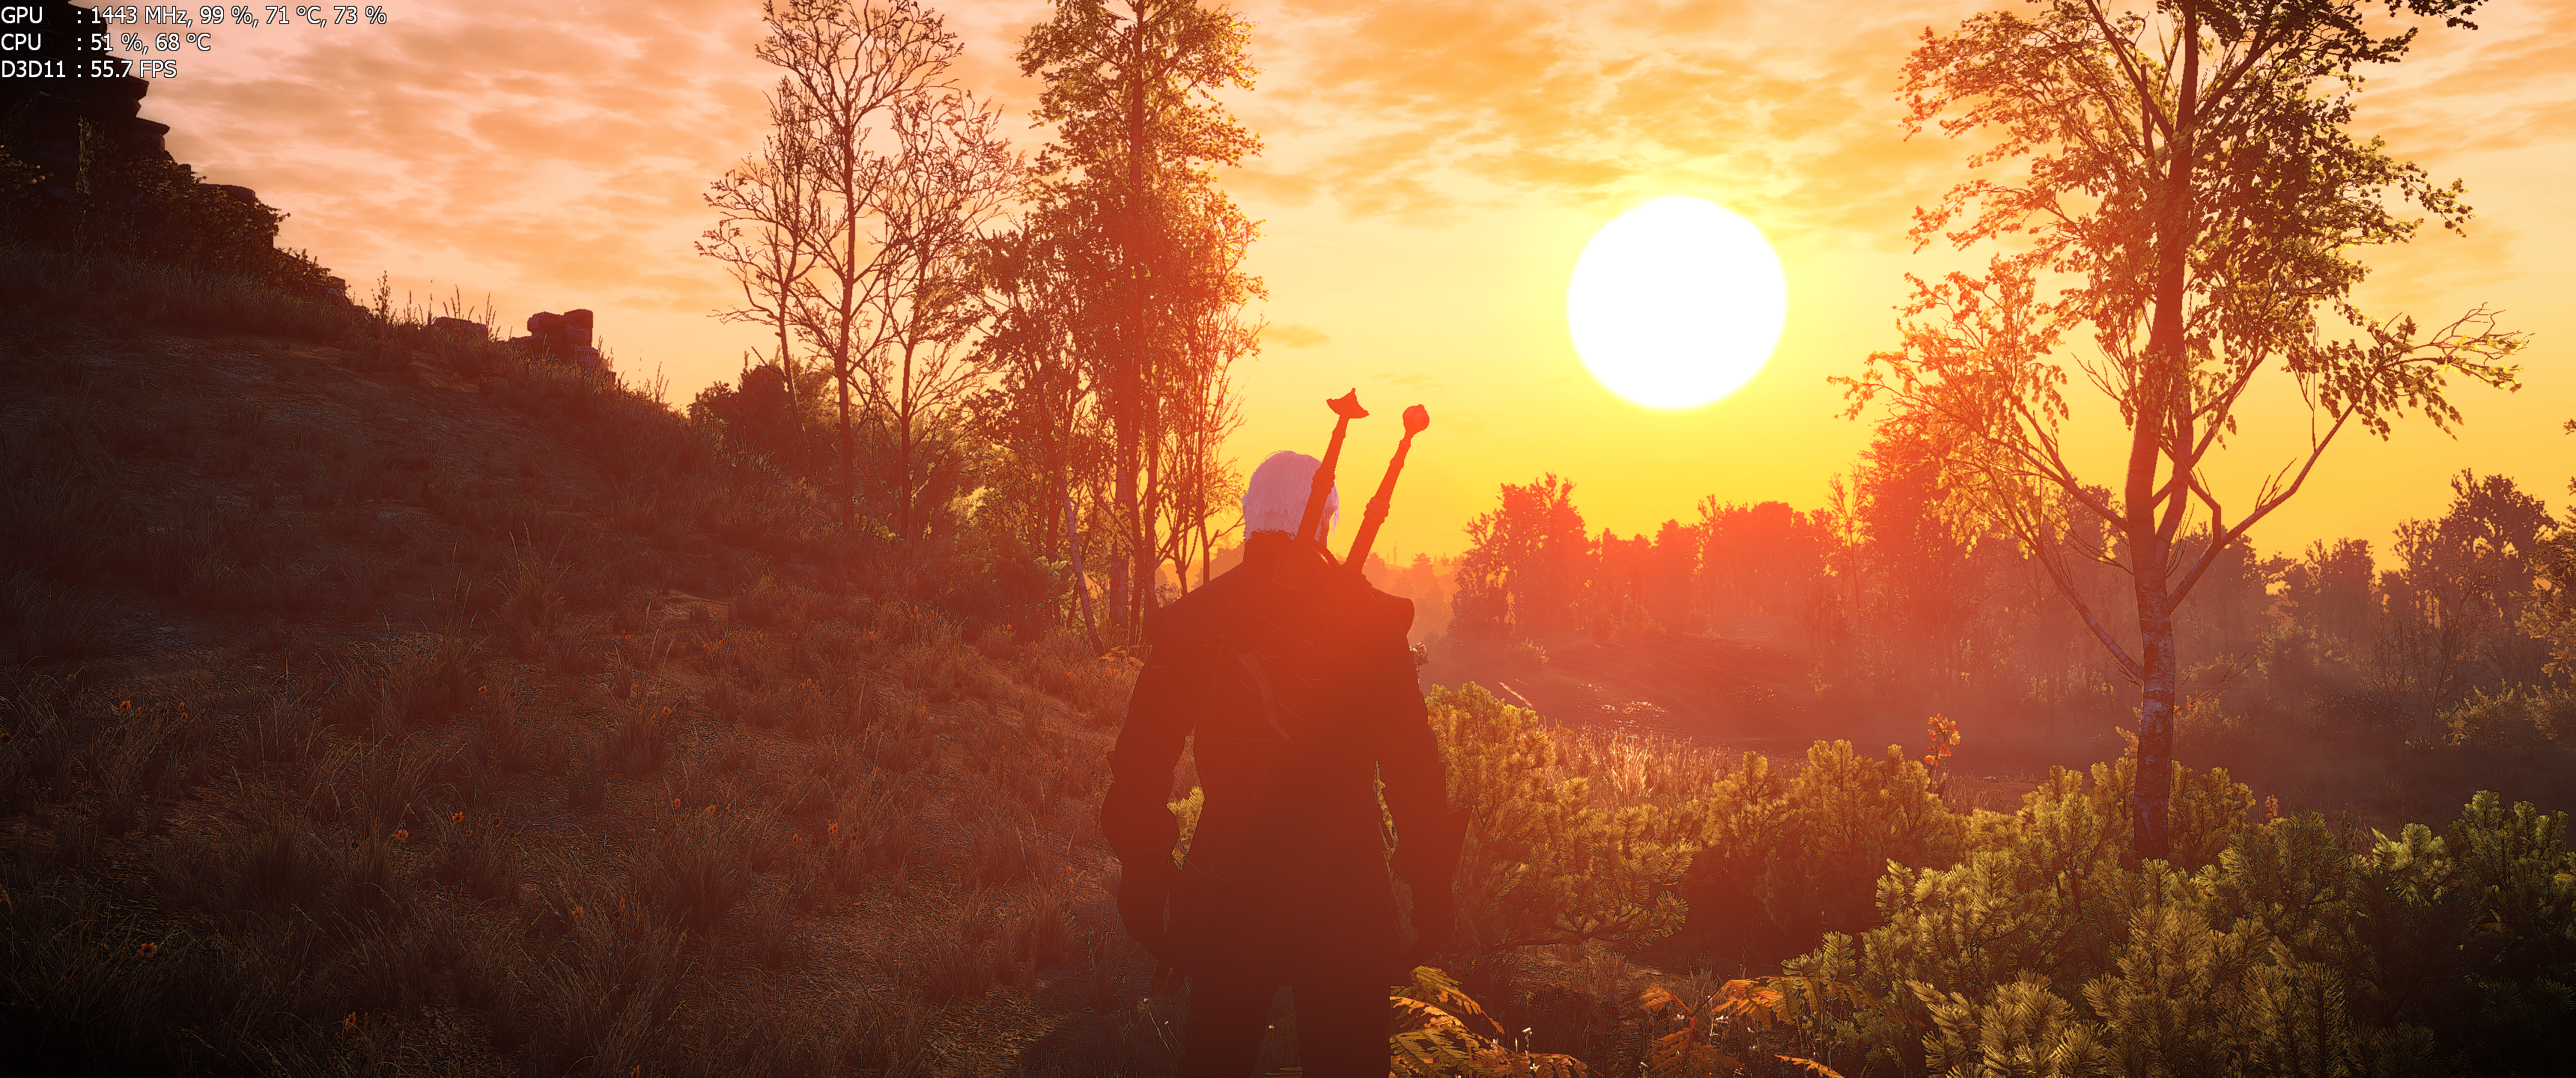 The Witcher 3 Screenshot 2017.11.18 - 20.55.23.27.png - Witcher 3: Wild Hunt, the